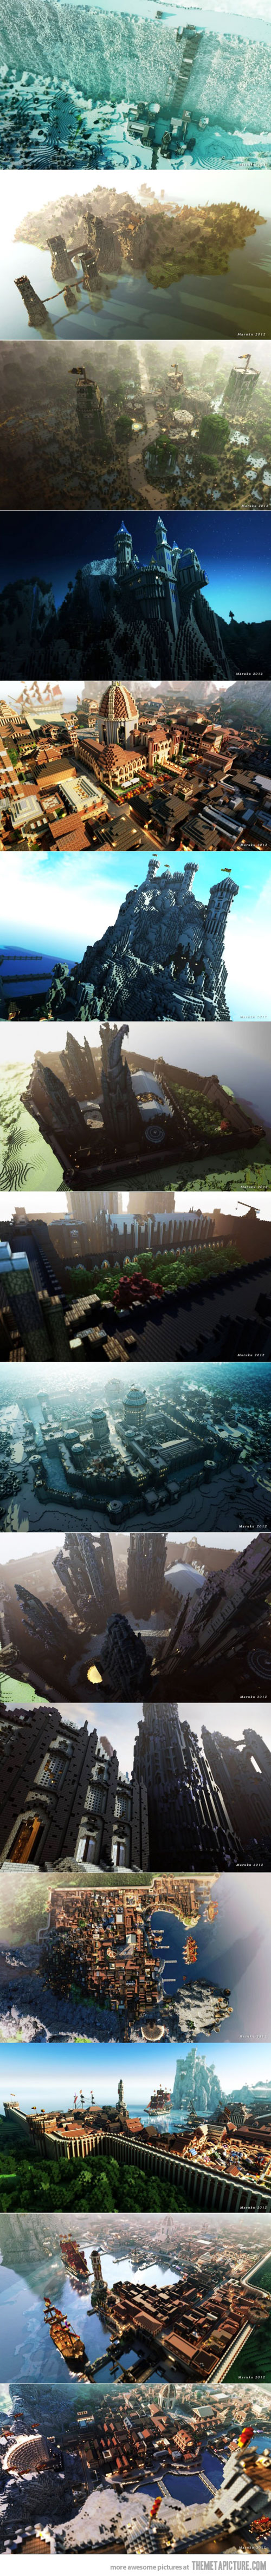 Insane builds in Minecraft of Westeros. Rendering on images is beaut.